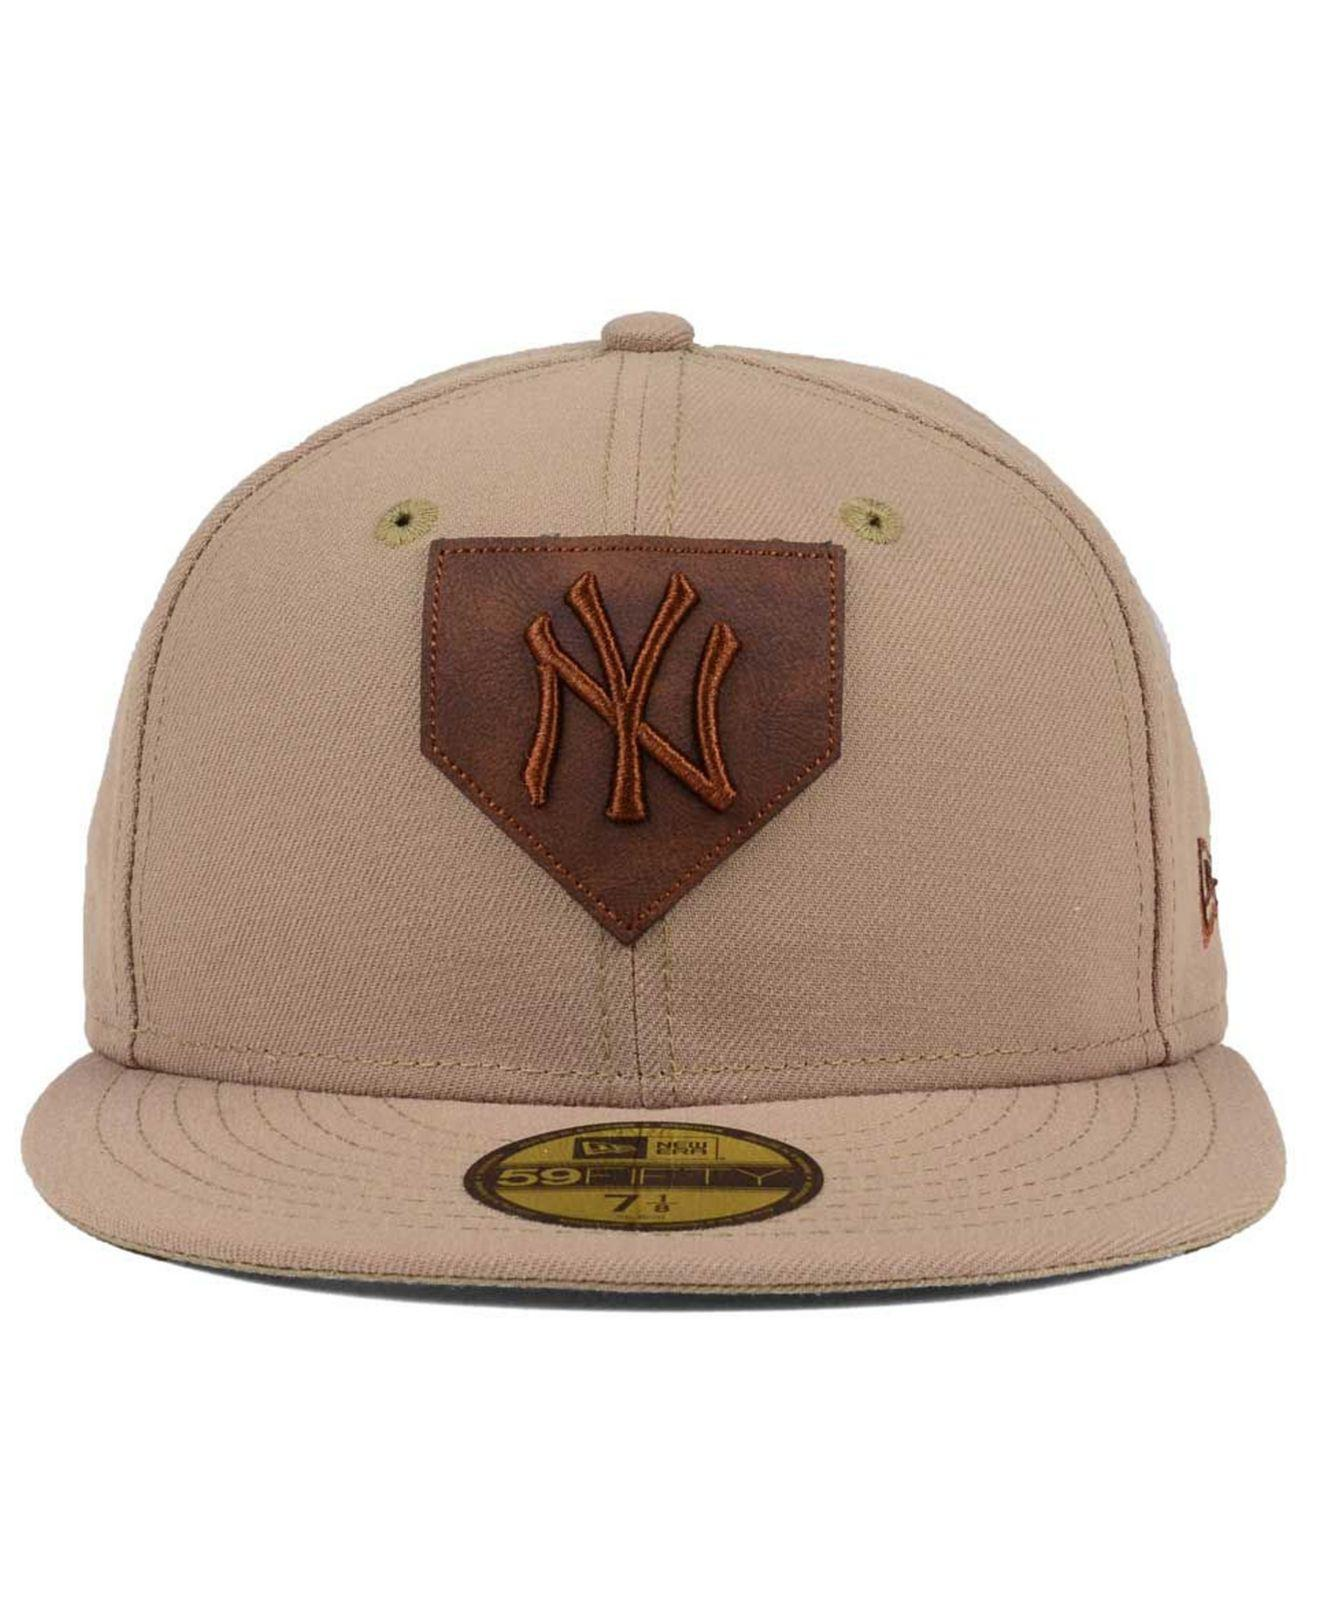 buy online 4f981 d47cf Lyst - KTZ The Logo Of Leather 59fifty Fitted Cap in Brown for Men